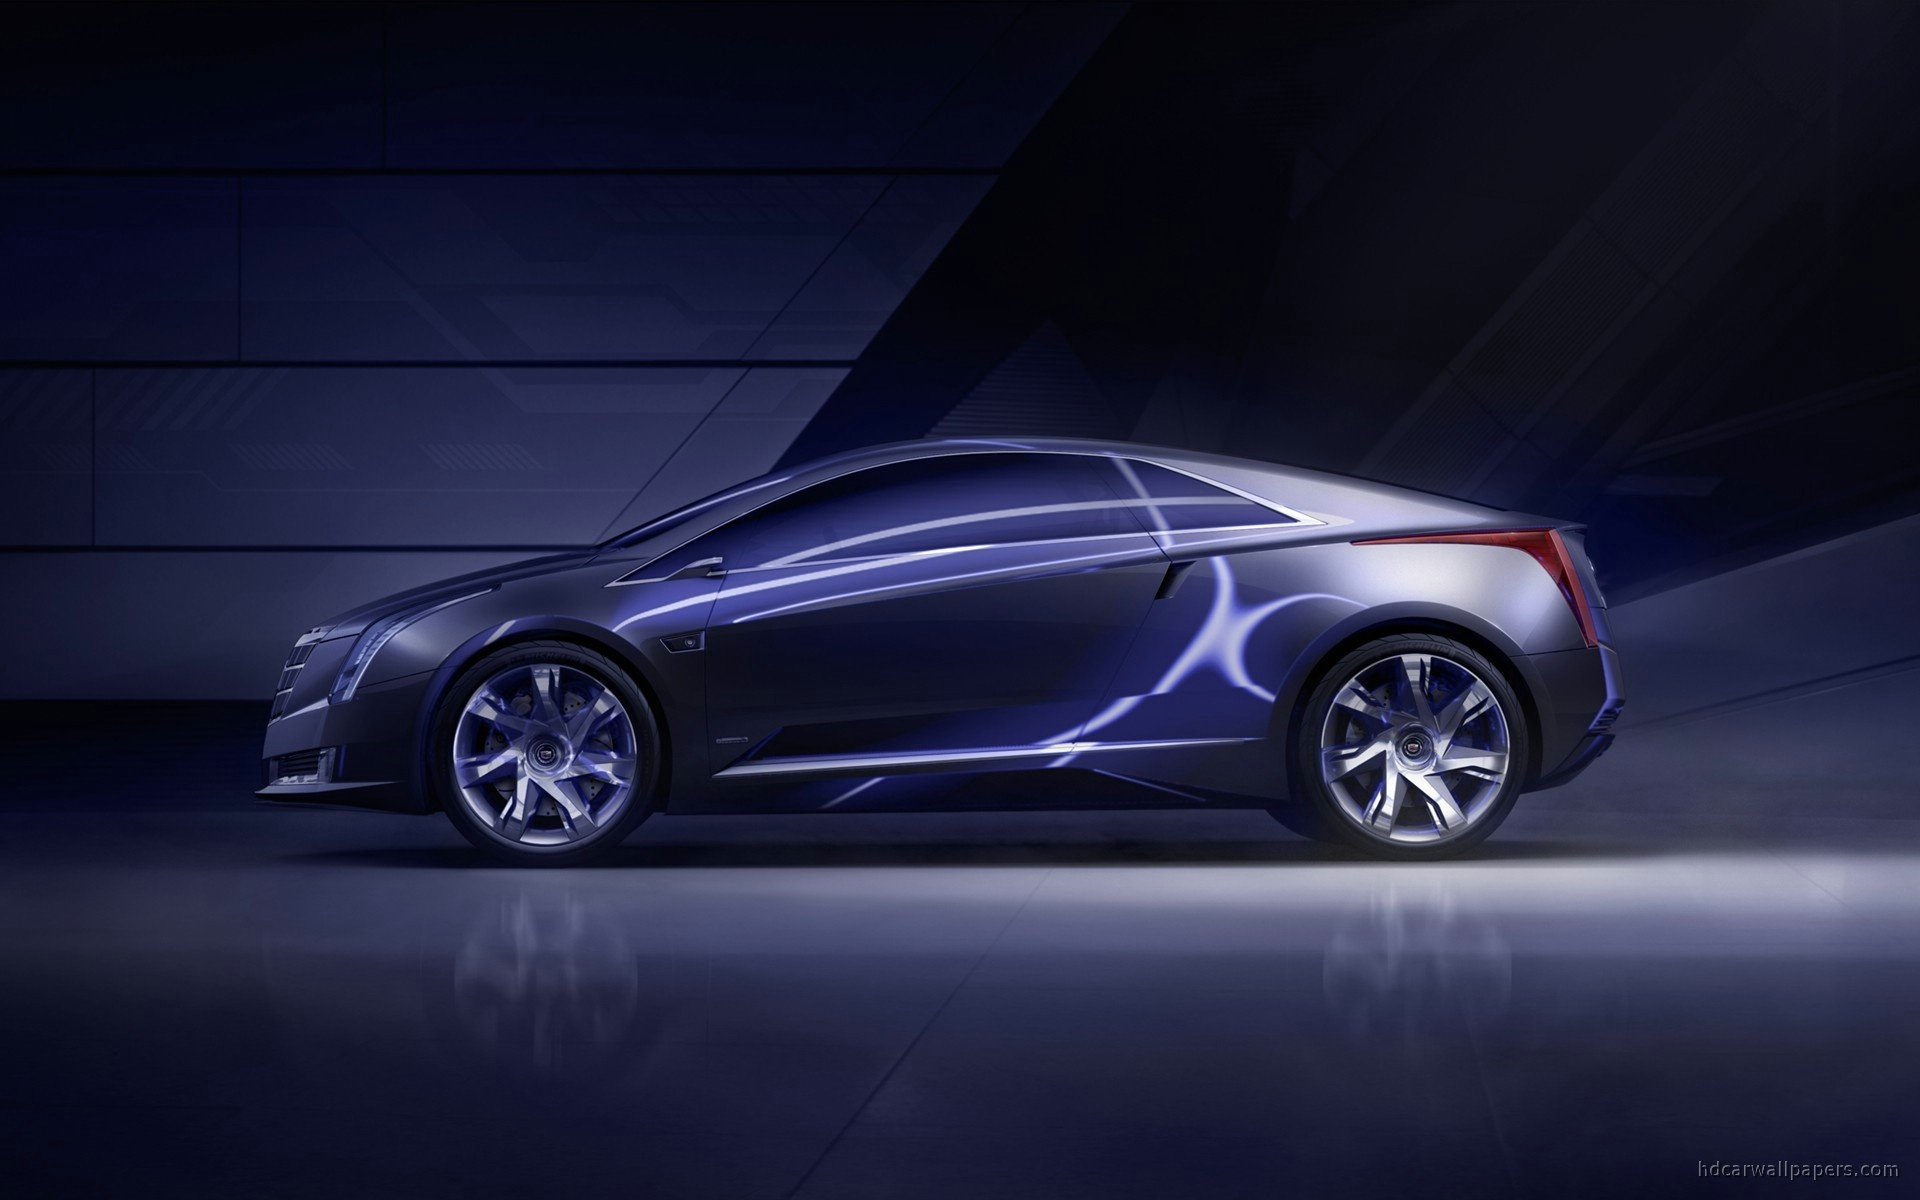 Cadillac Concept Wallpaper Free Downloads